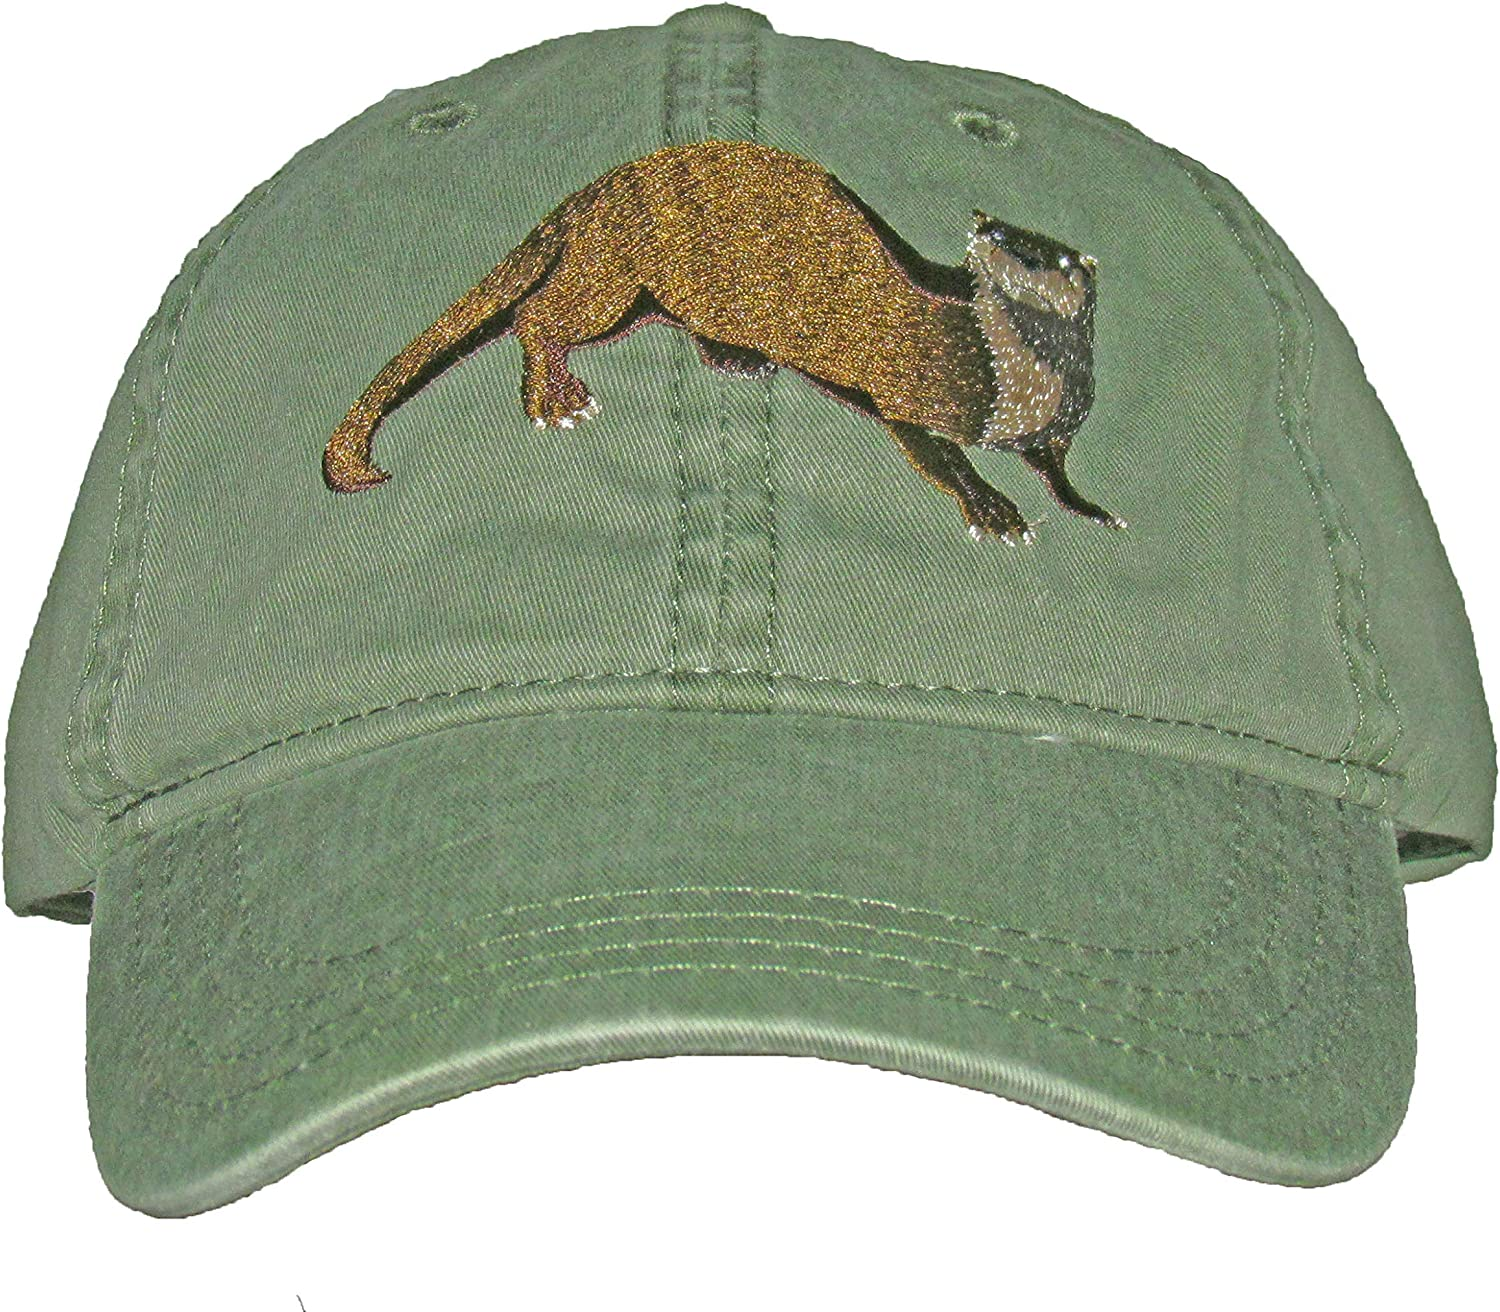 Tom's Bird Feeders Super popular specialty store River Otter Cap Cotton Embroidered Green cheap